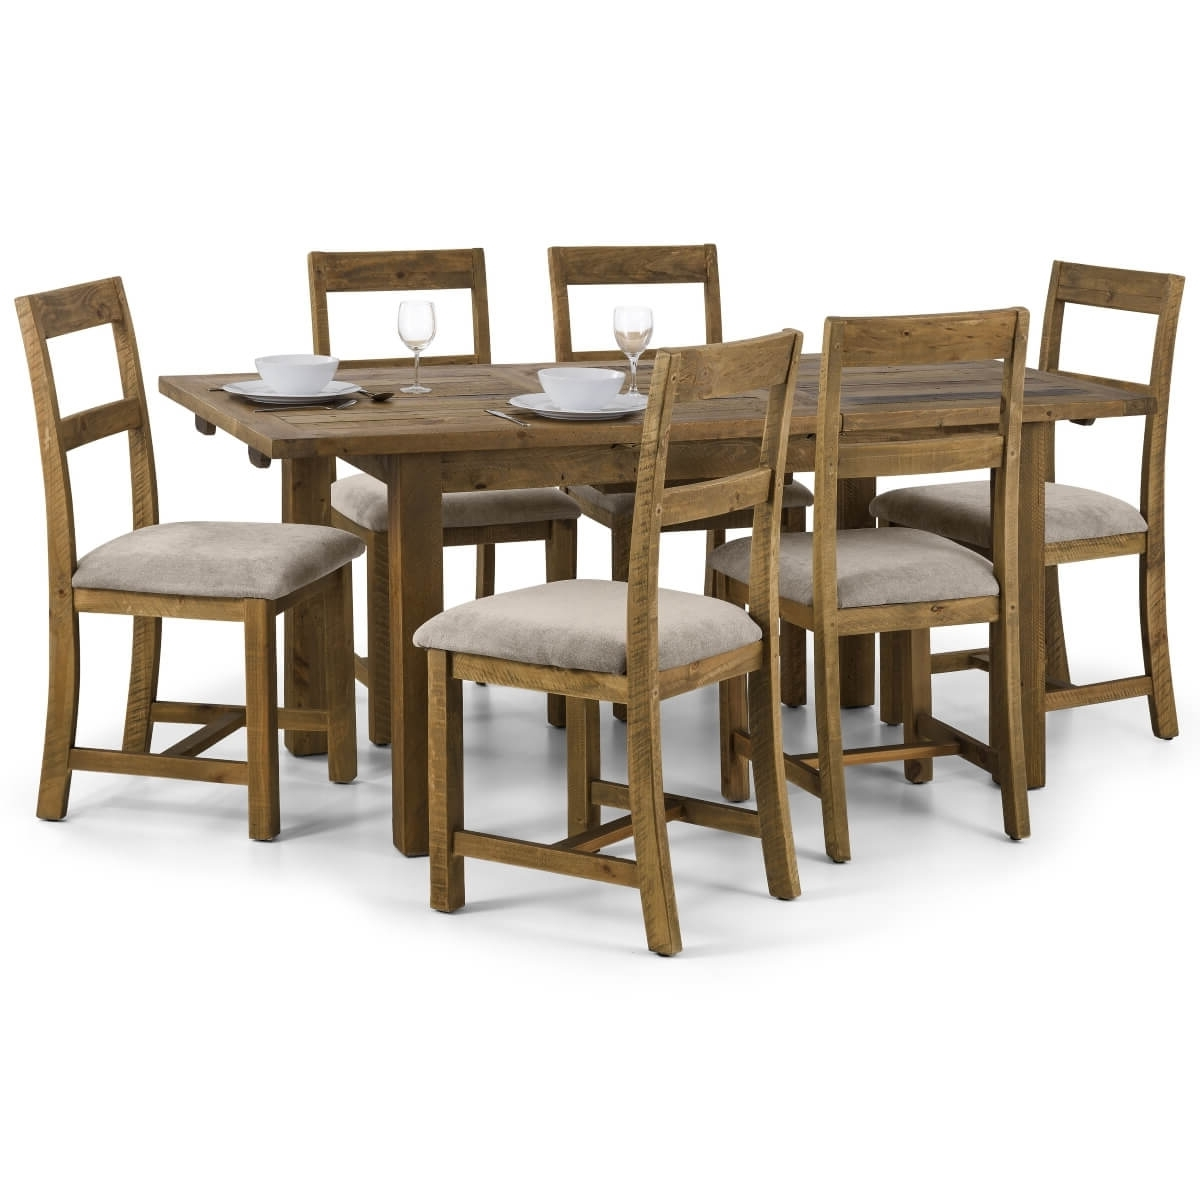 Aspen Dining Tables Regarding Most Popular Dining Set – Aspen Extending Dining Table, 4 Chairs In Pine Asp (View 9 of 25)